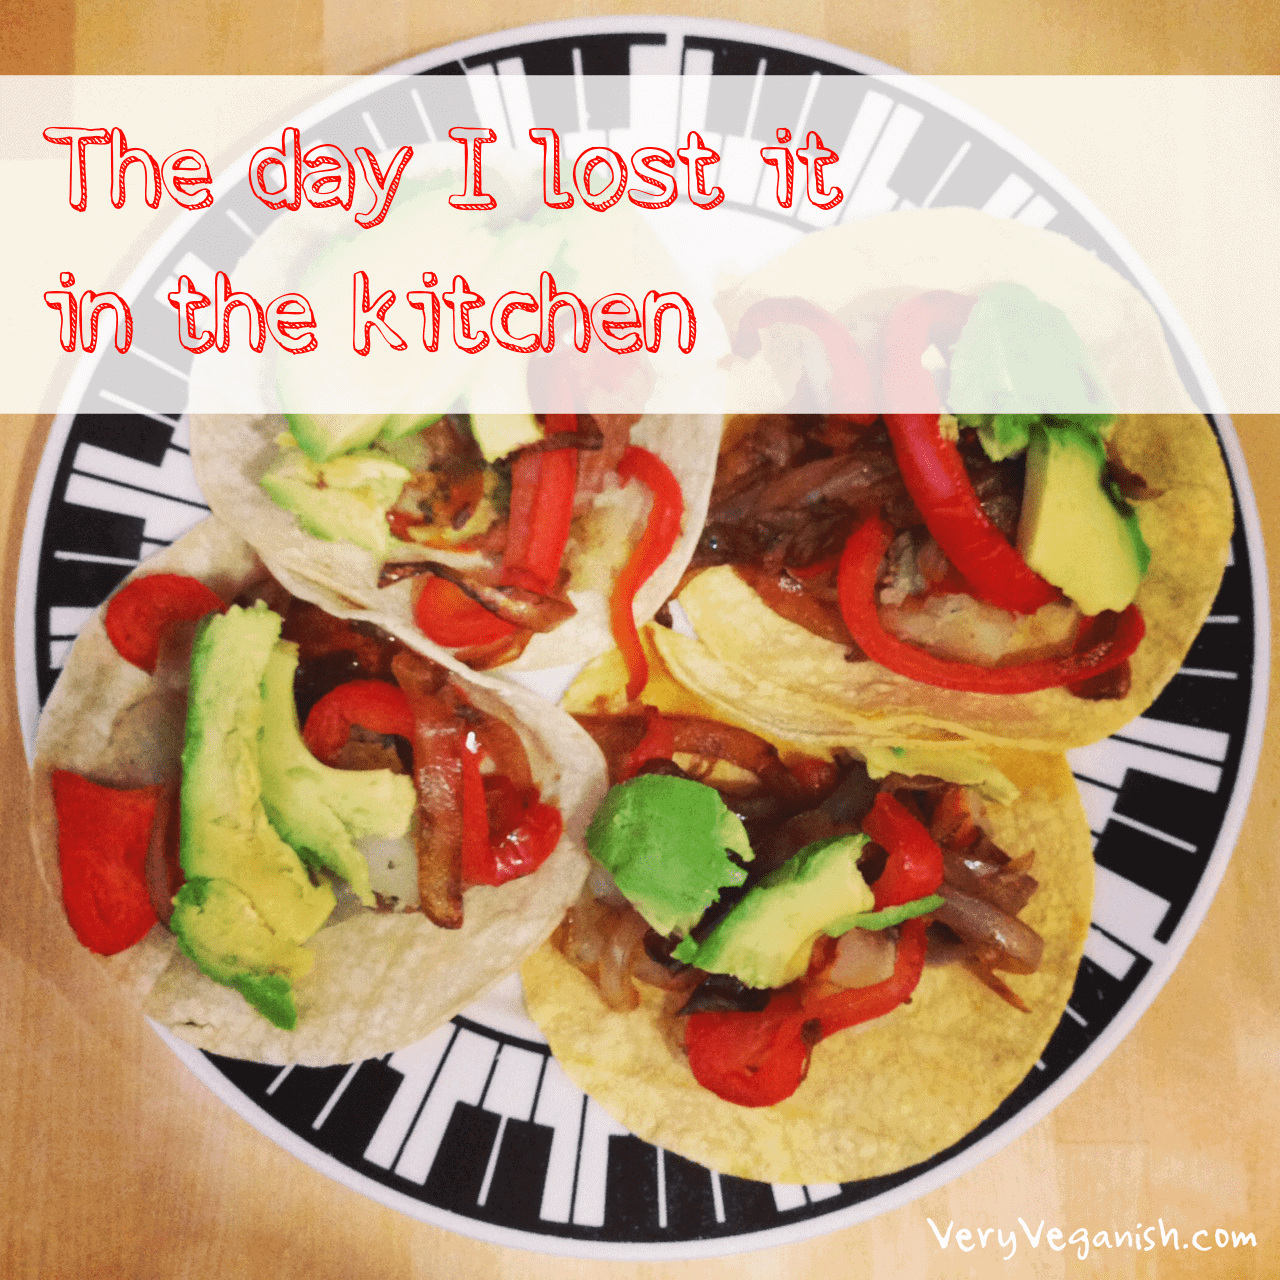 We've all had bad days in the kitchen. Right? I hope it's not just me. The day I lost it in the kitchen | Very Veganish.